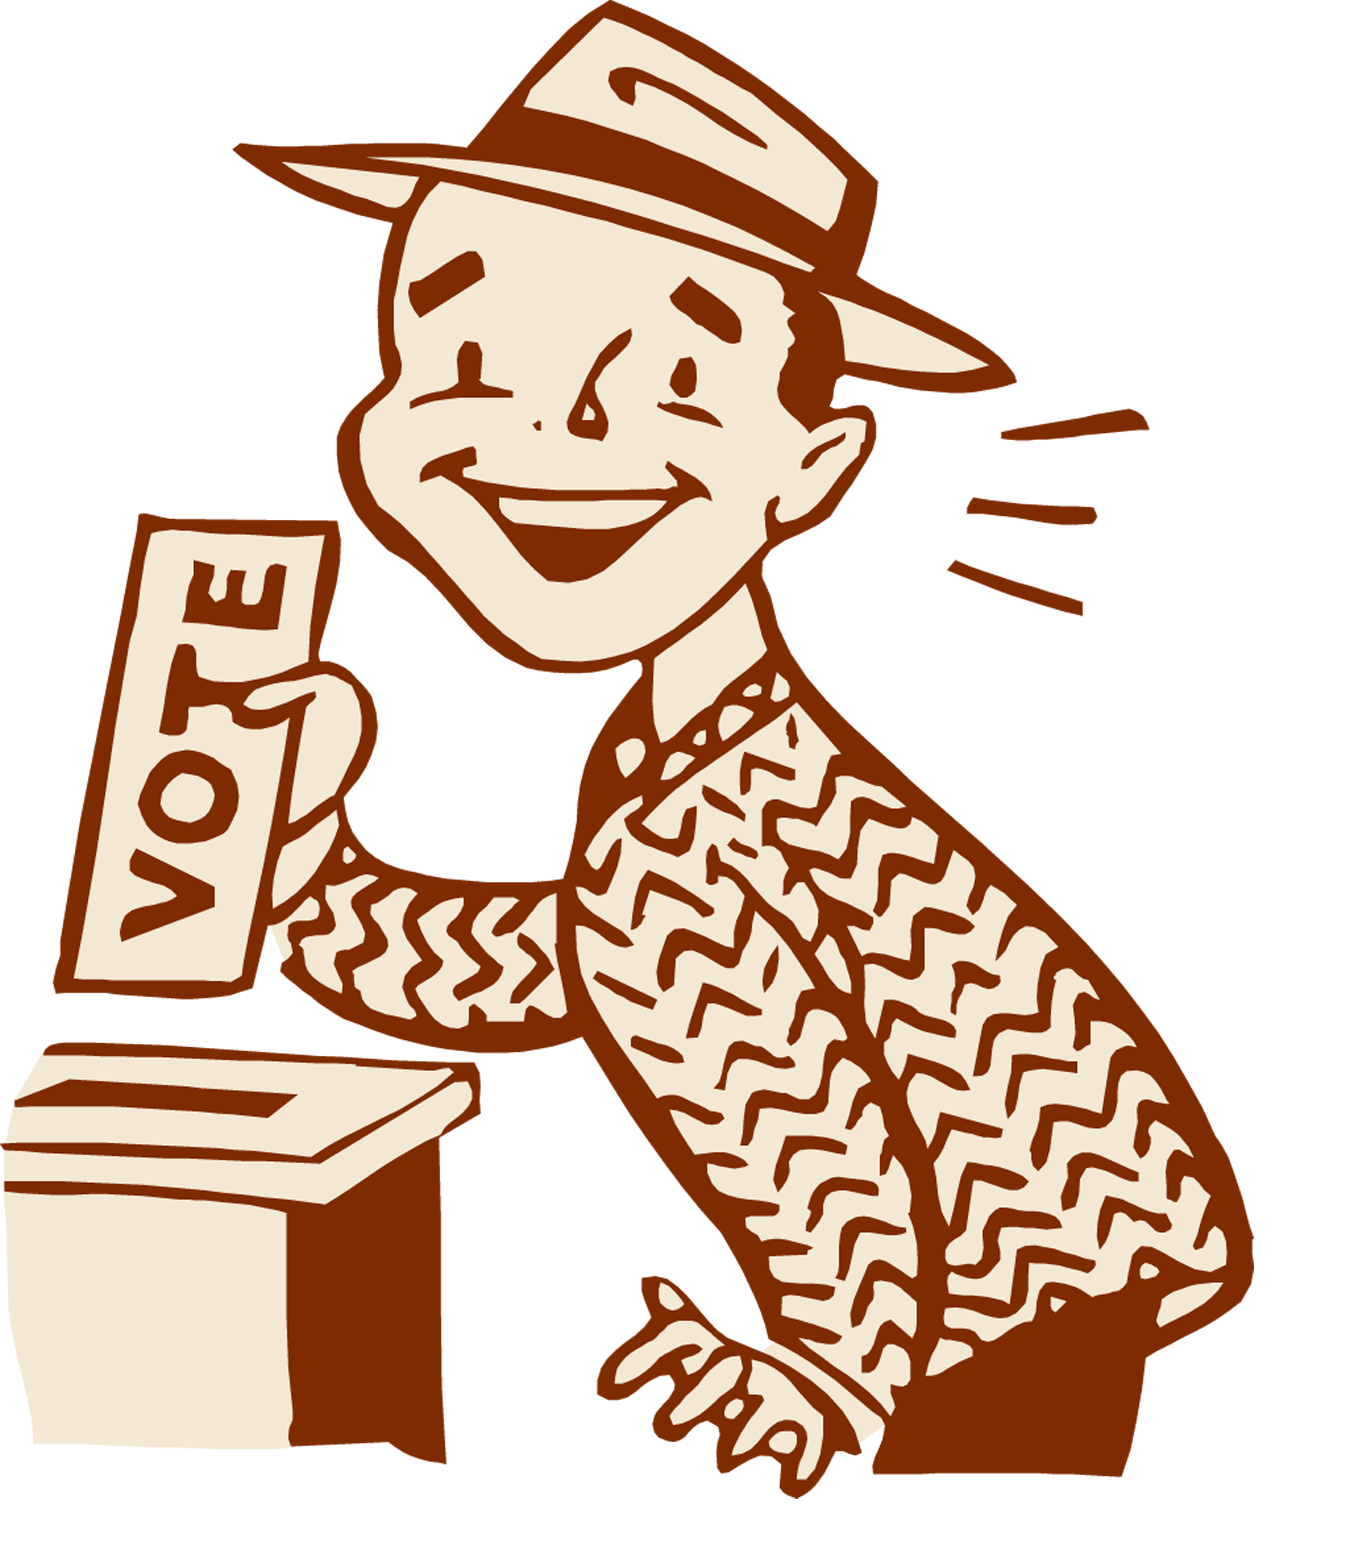 Voting clipart referendum. Election day tuesday vote